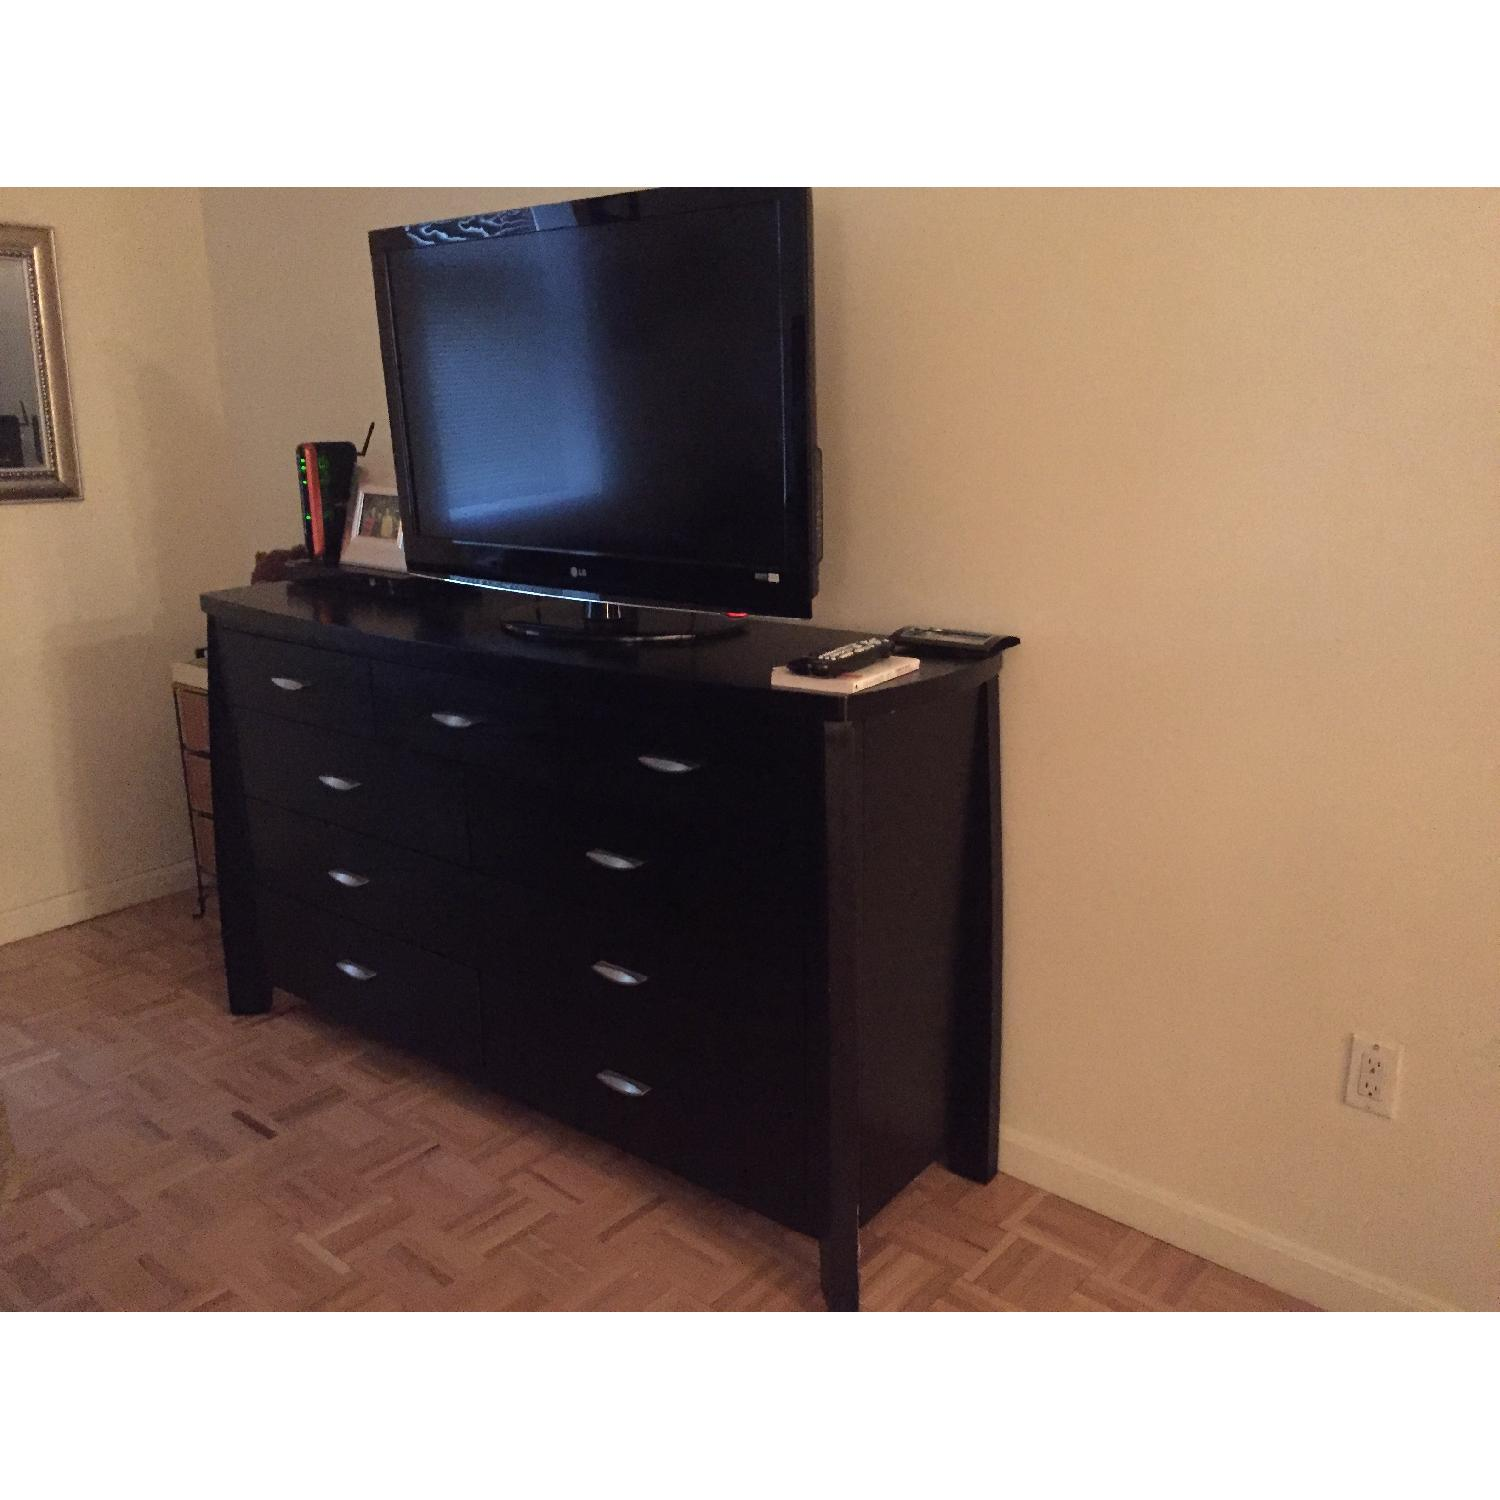 Rooms To Go Black Wood Dresser - image-1